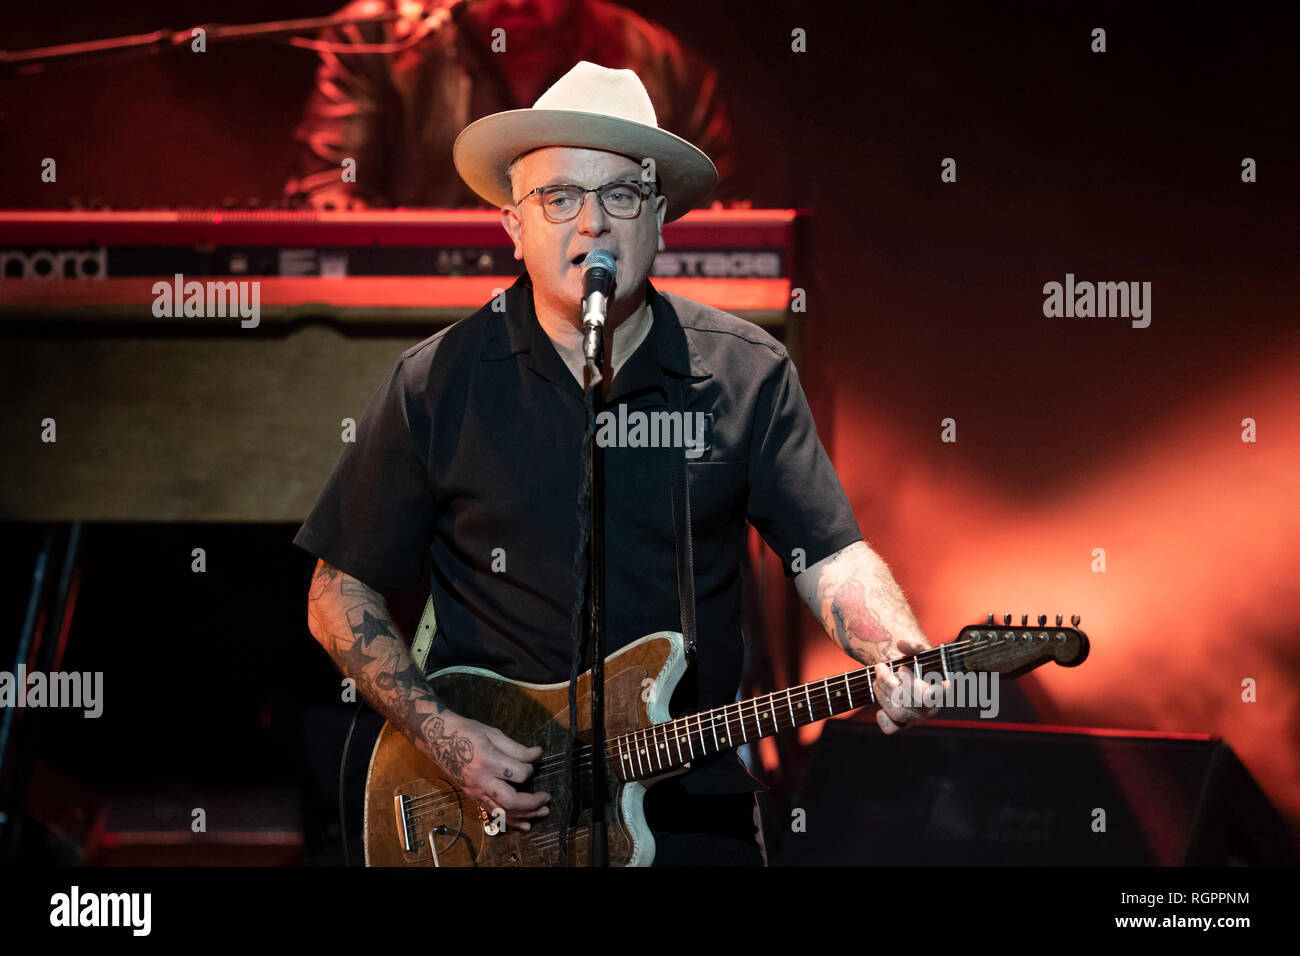 Singer Sanseverino on stage on the occasion of the Monte-Carlo Jazz Festival in Monaco, on 2018/11/23 Stock Photo